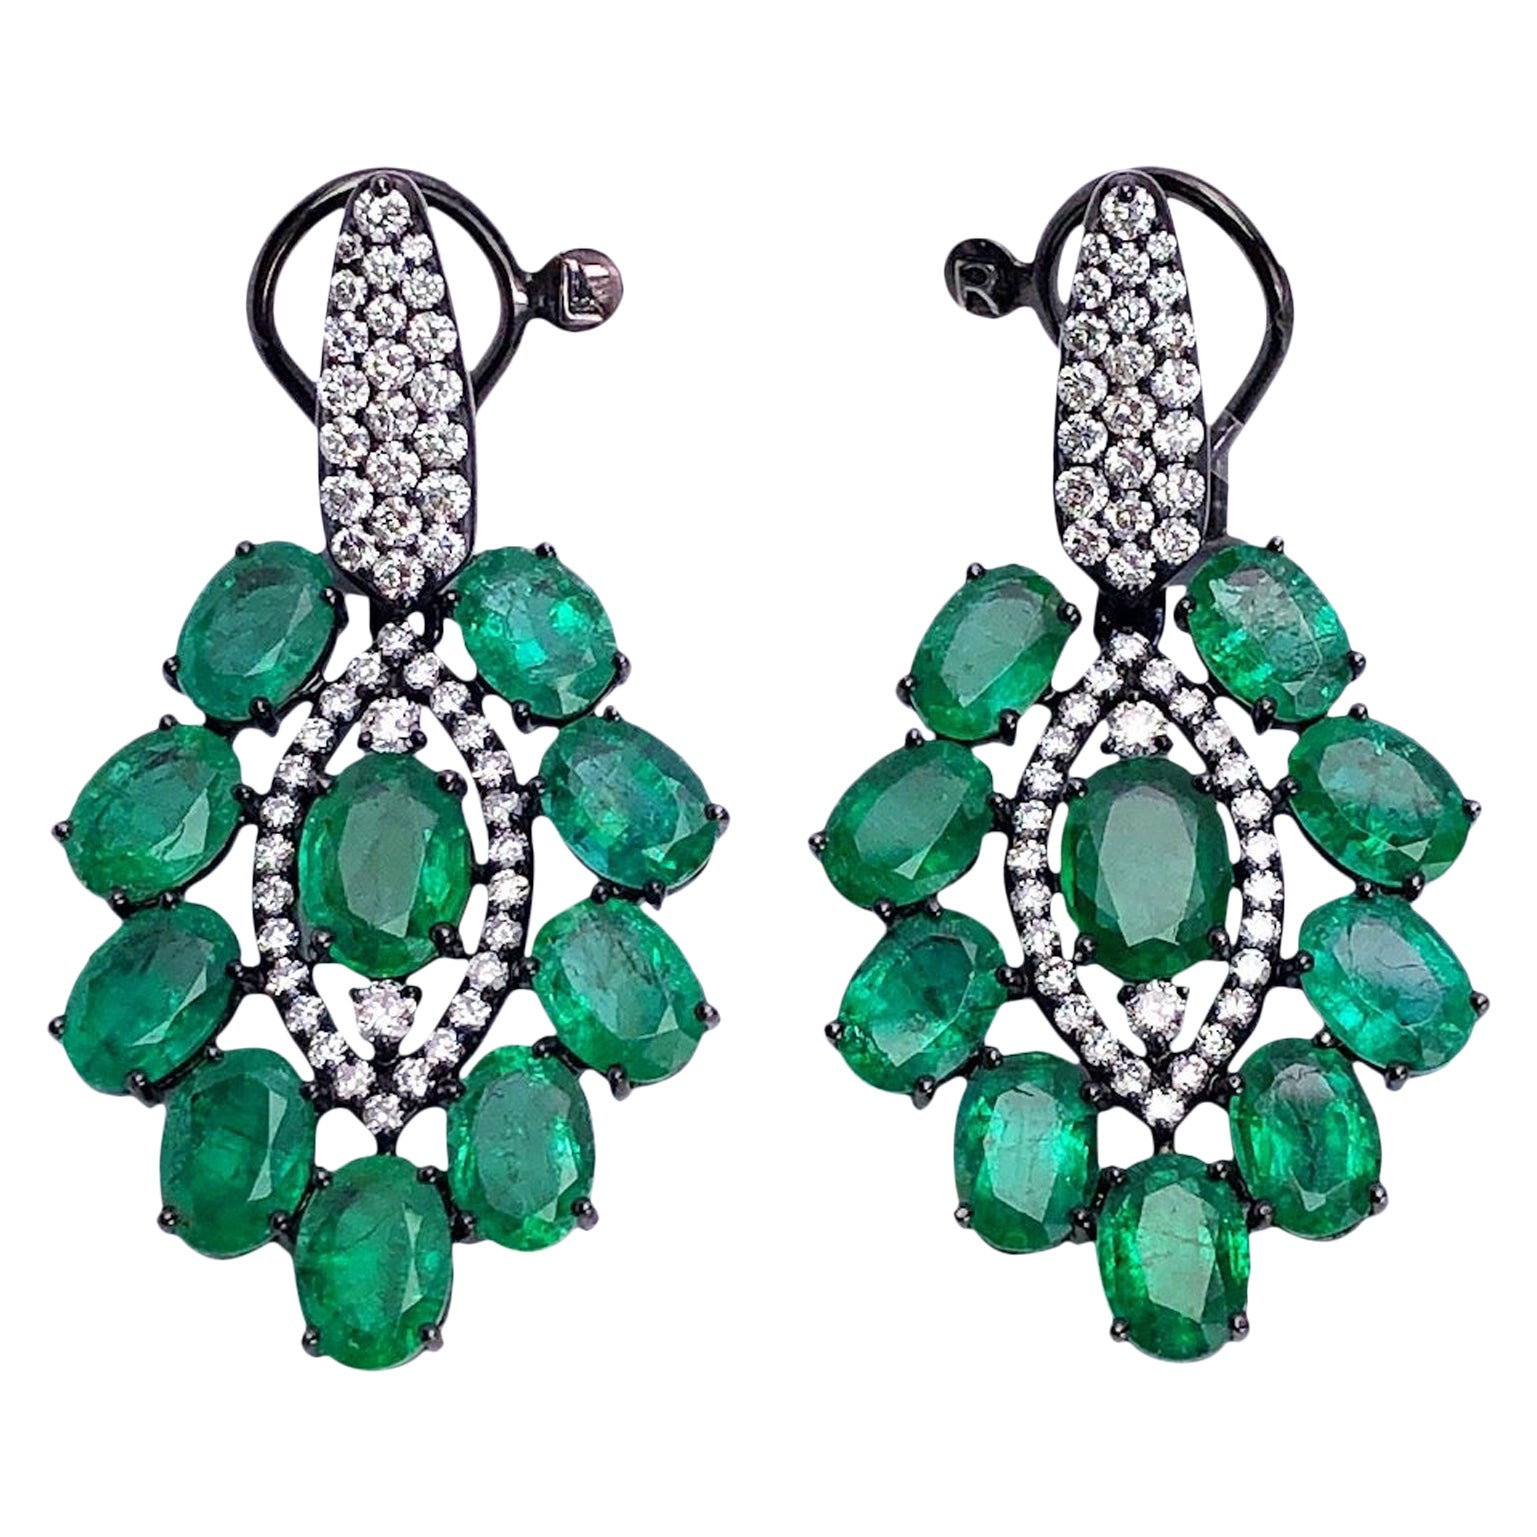 Sutra Jewels 18KT Blackened Gold Drop Earrings with 15.92Ct. Emeralds & Diamonds